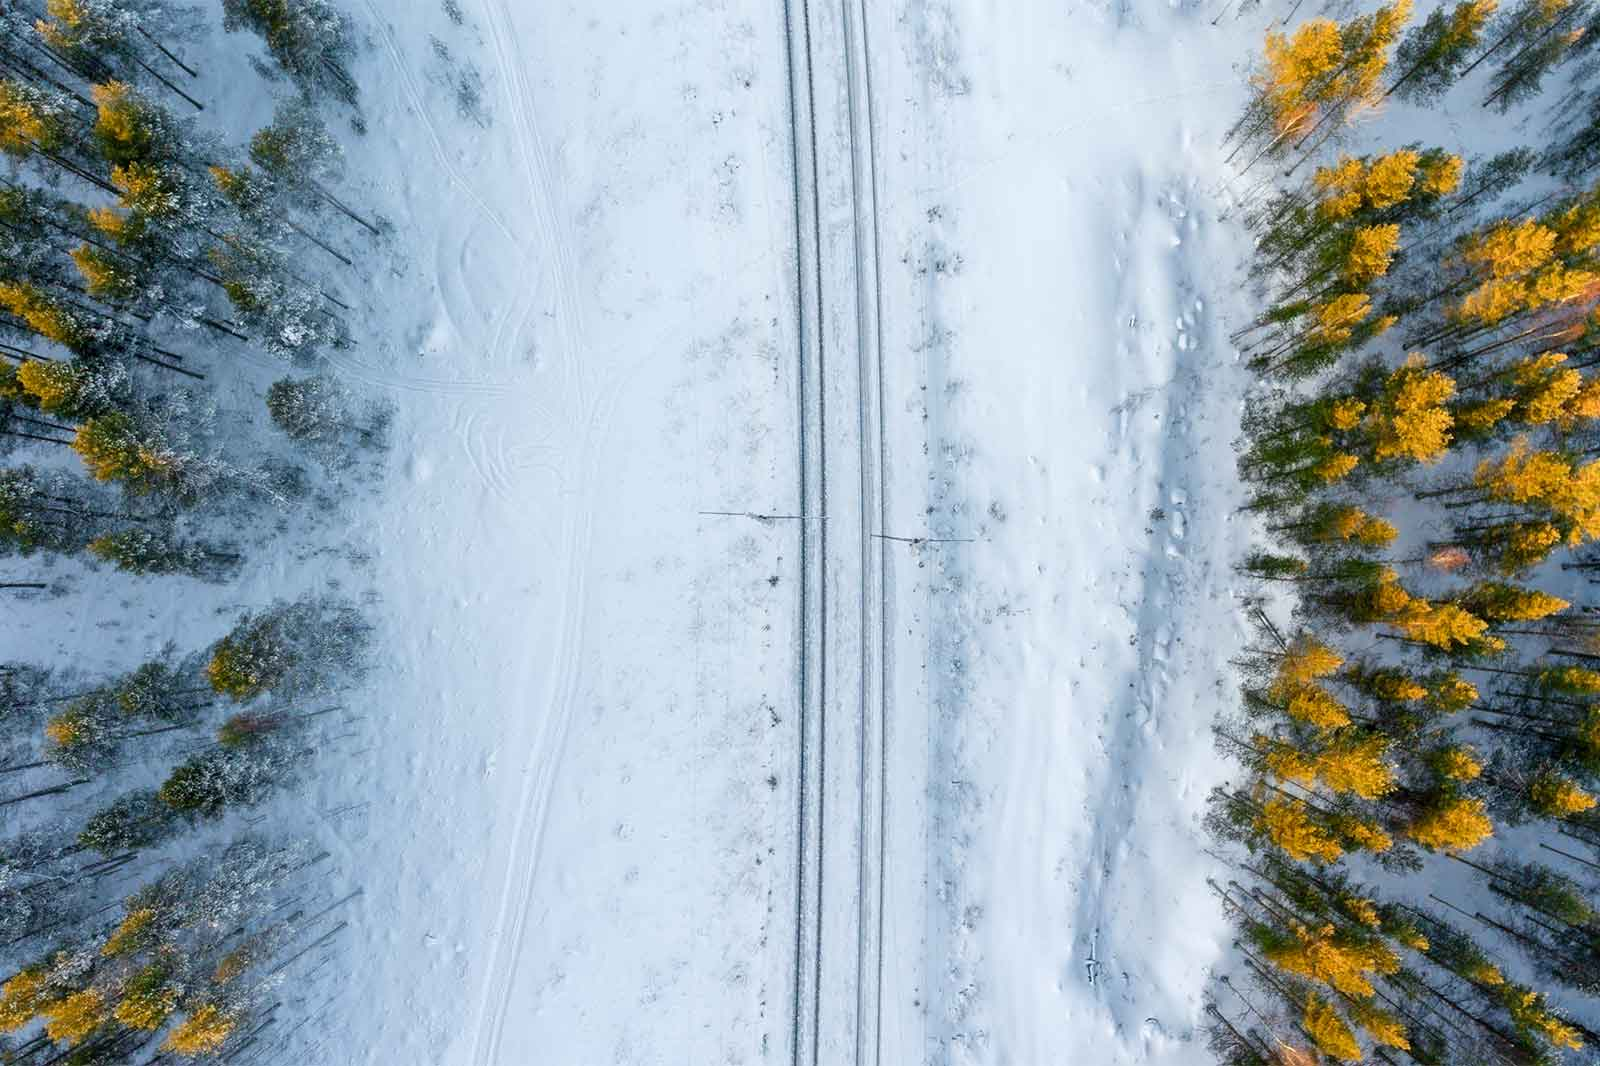 image of train tracks in the middle of a forest with snow